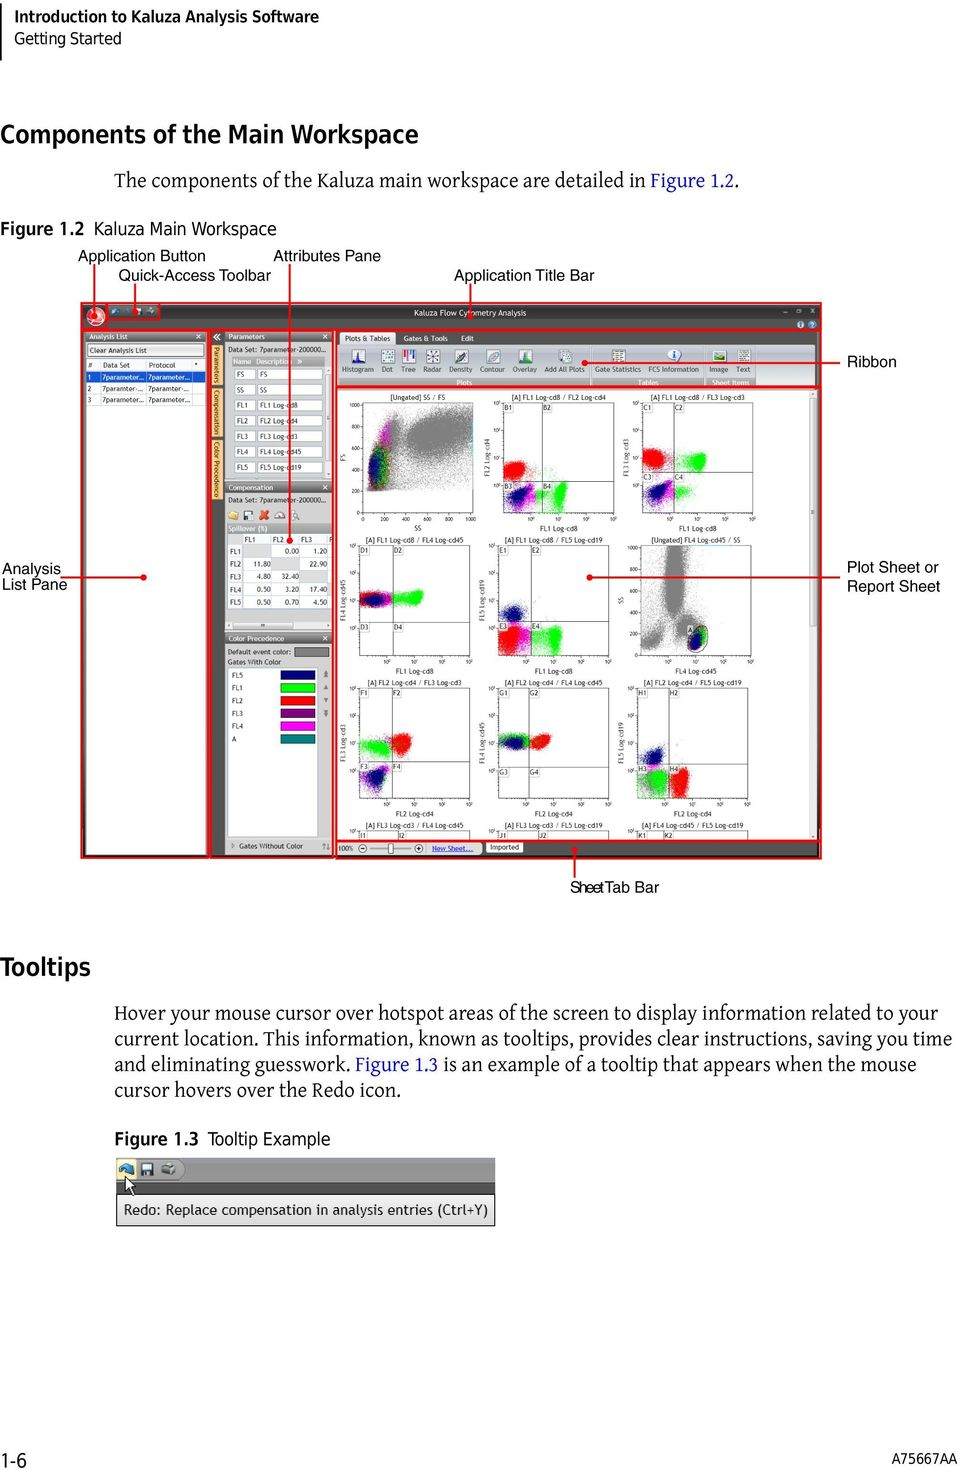 Instructions For Use Kaluza Flow Cytometry Analysis Software Smartart Diagram This Visually Cues A 360 Degree Plan 2 Figure 1